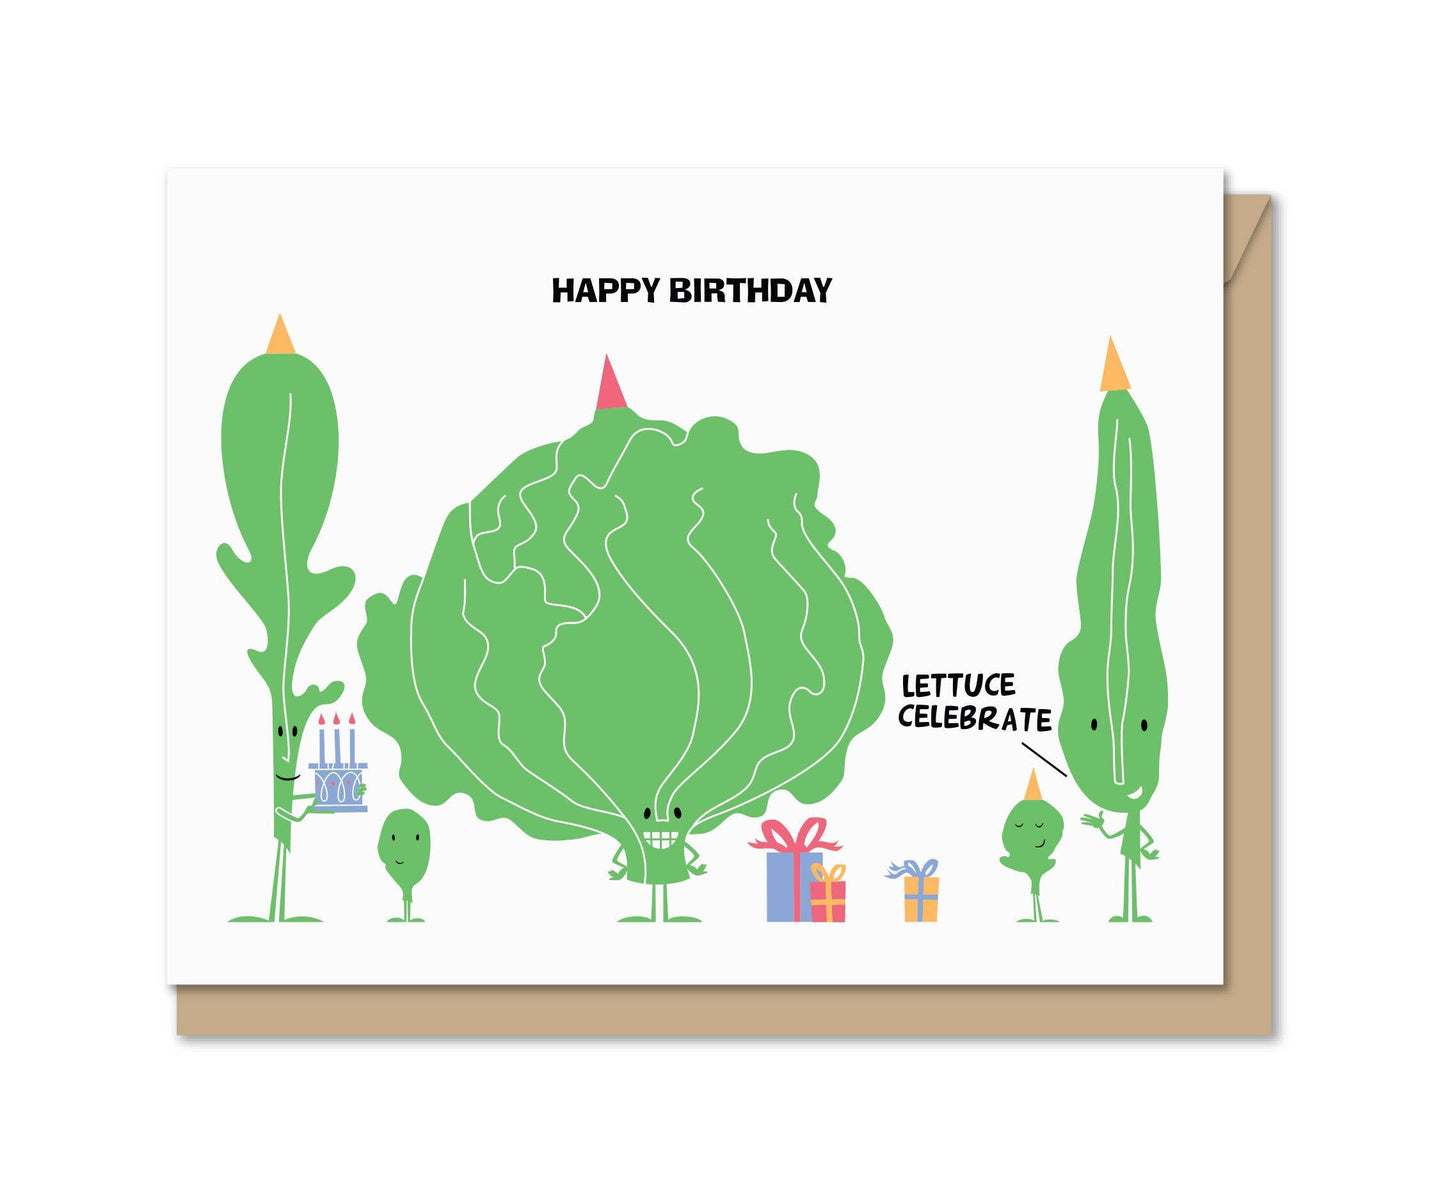 Lettuce Celebrate Birthday